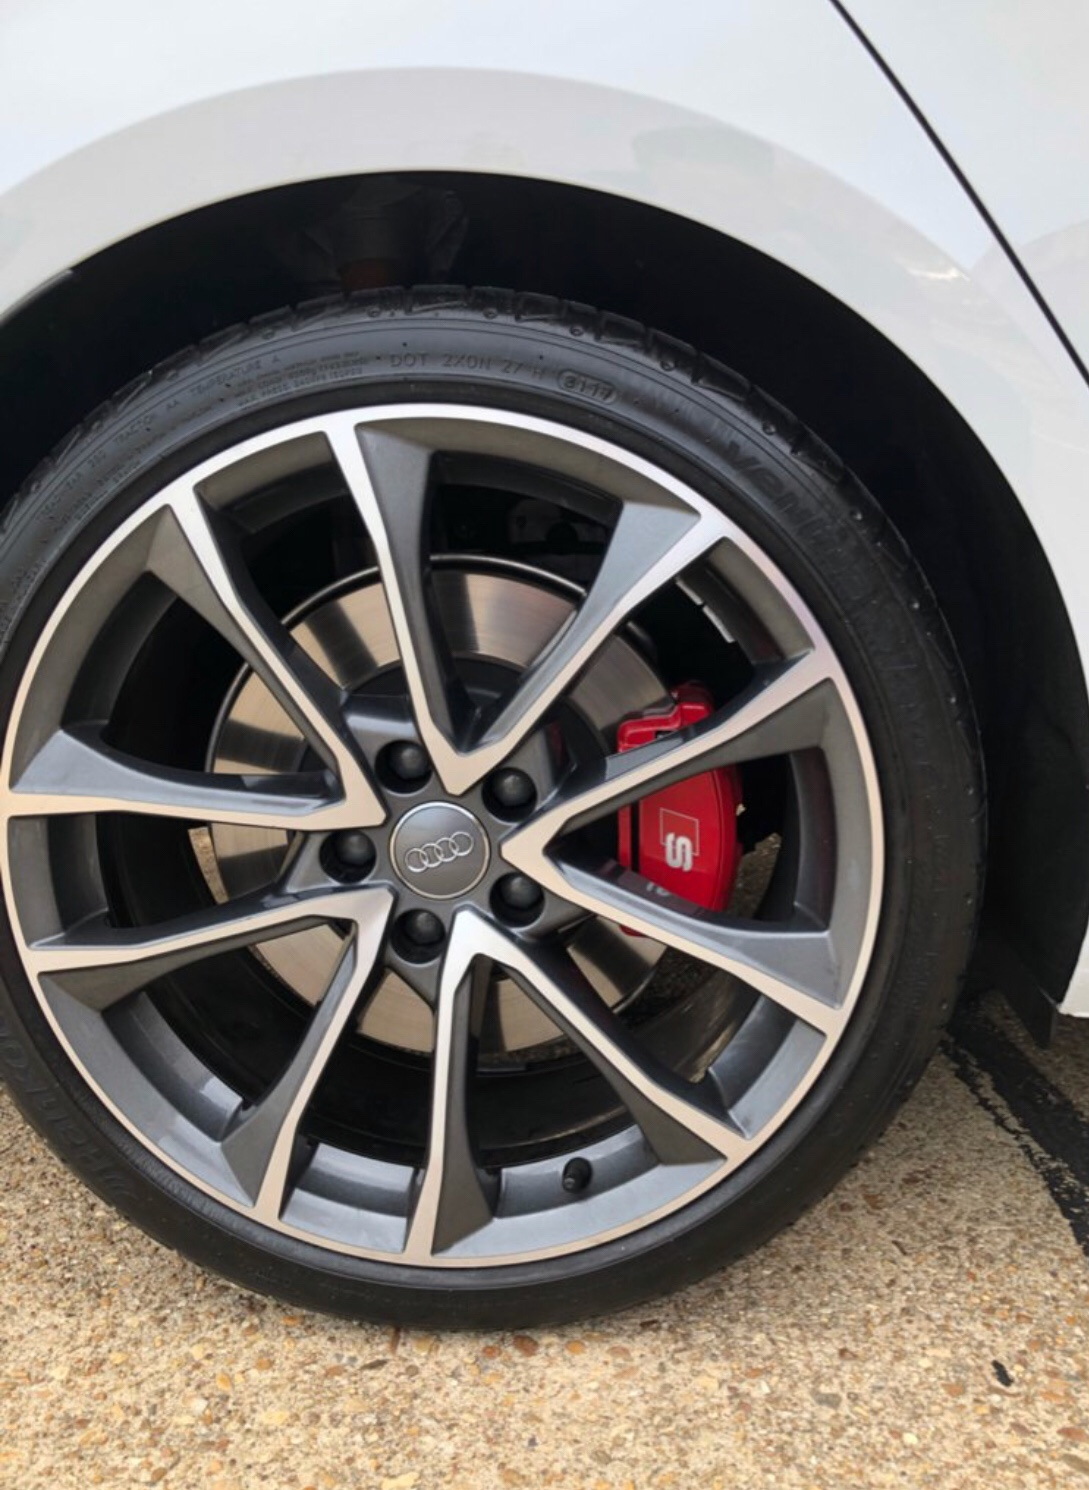 Wanted Wanted Audi S4 2017 18 5 V Spoke Oem Wheels